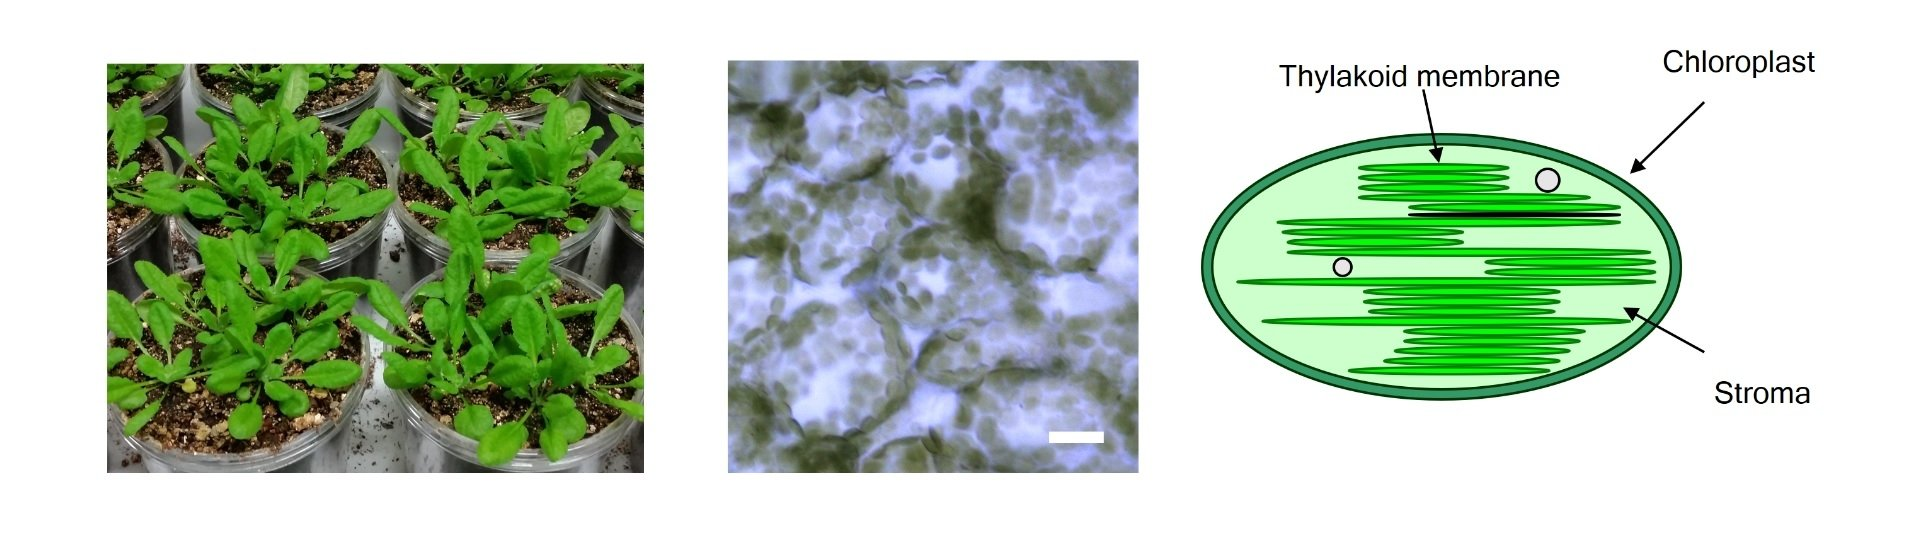 Epidermal cells of Arabidopsis leaves and schematic of chloroplasts Arabidopsis leaves (left), Epidermal cells (center, bar=20 μm) and schematic of chloroplasts (right). Chloroplasts, size from 3 to 10 μm, photosynthetic cell organelles in green leaves, capture light energy and use it to produce energy-rich molecules and to generate oxygen. They split water and use the electrons from these molecules on the process.